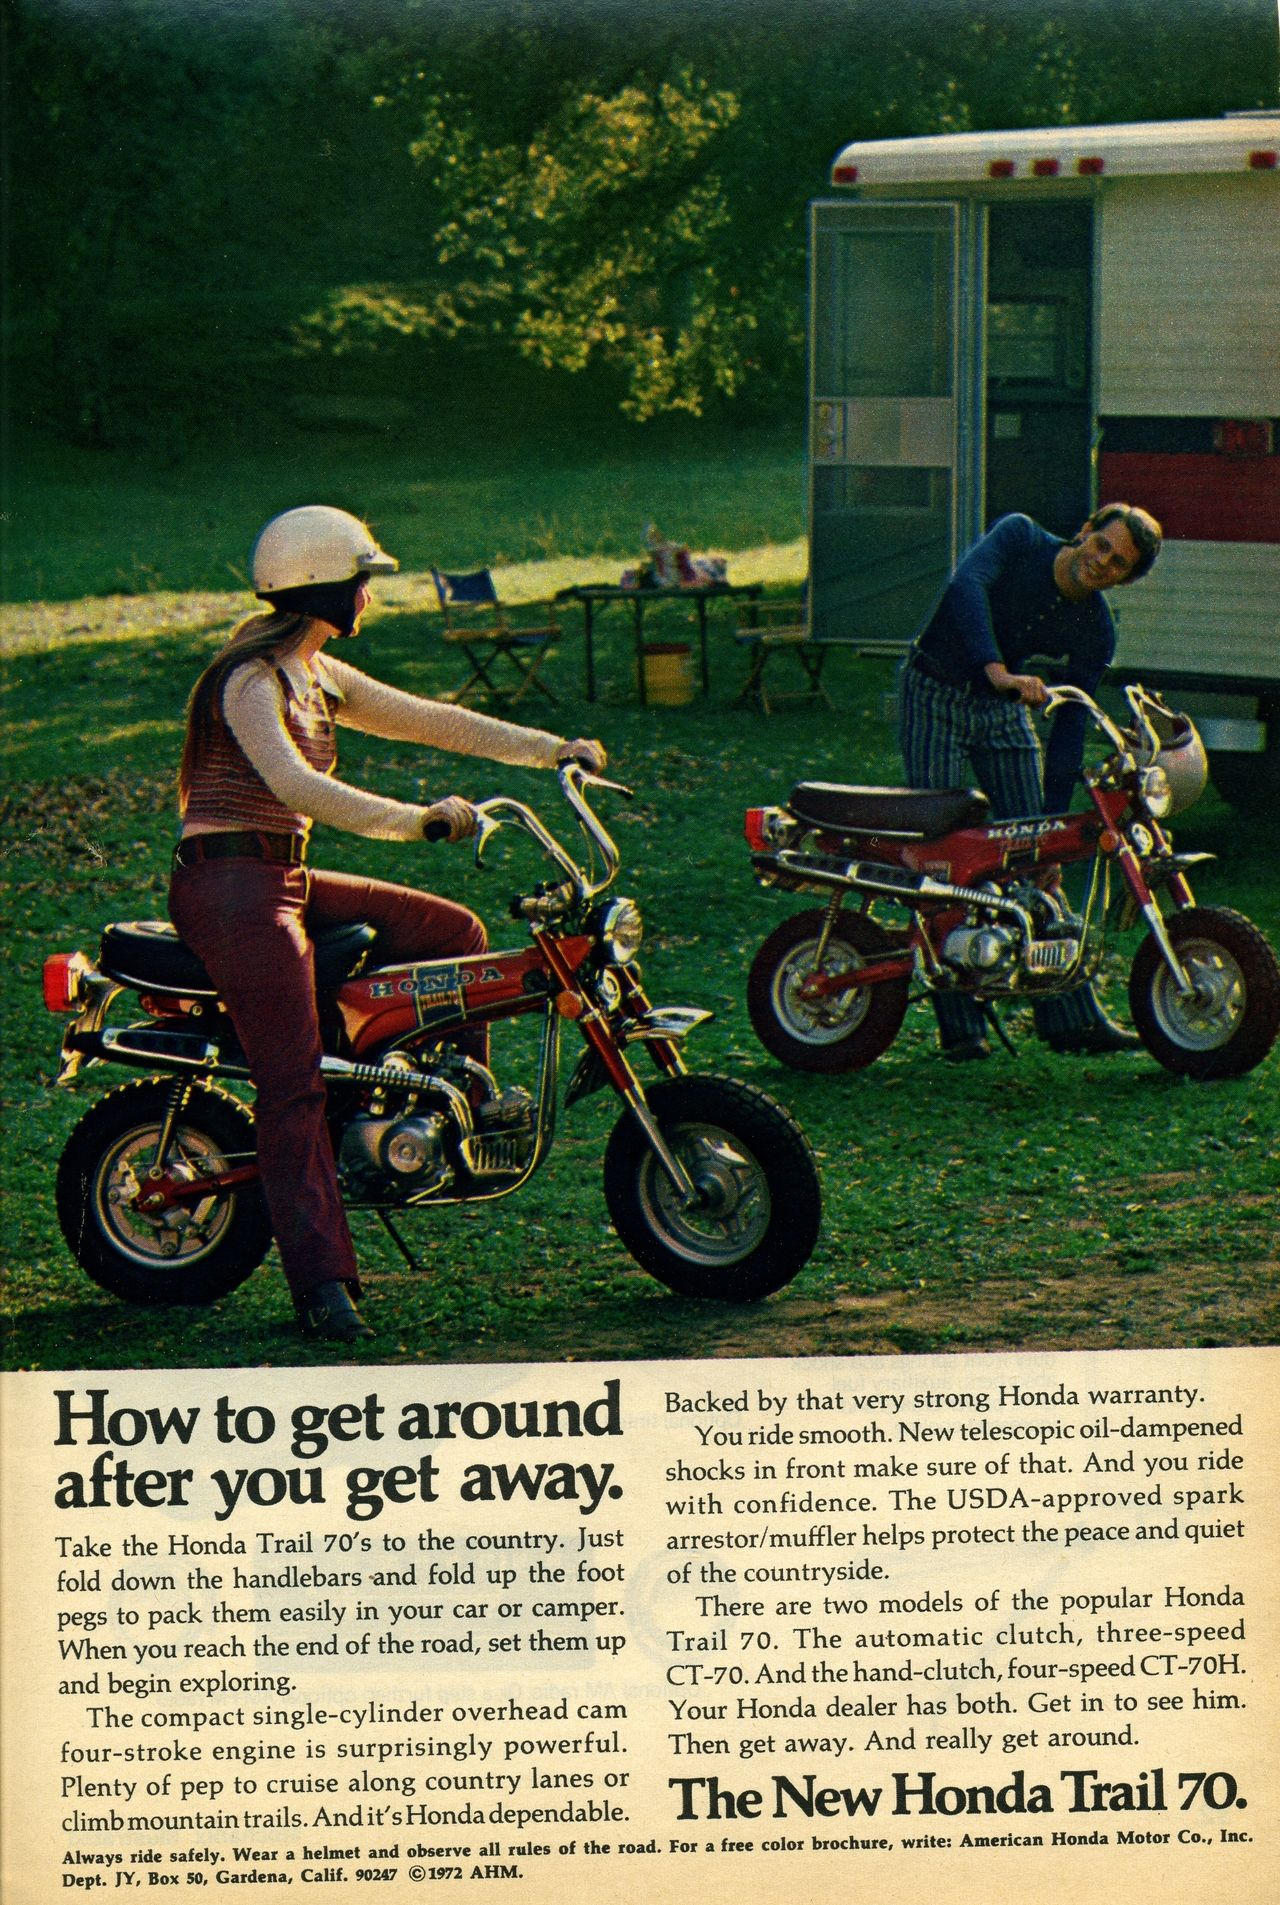 hight resolution of 1972 honda trail 70 advertisement photo picture